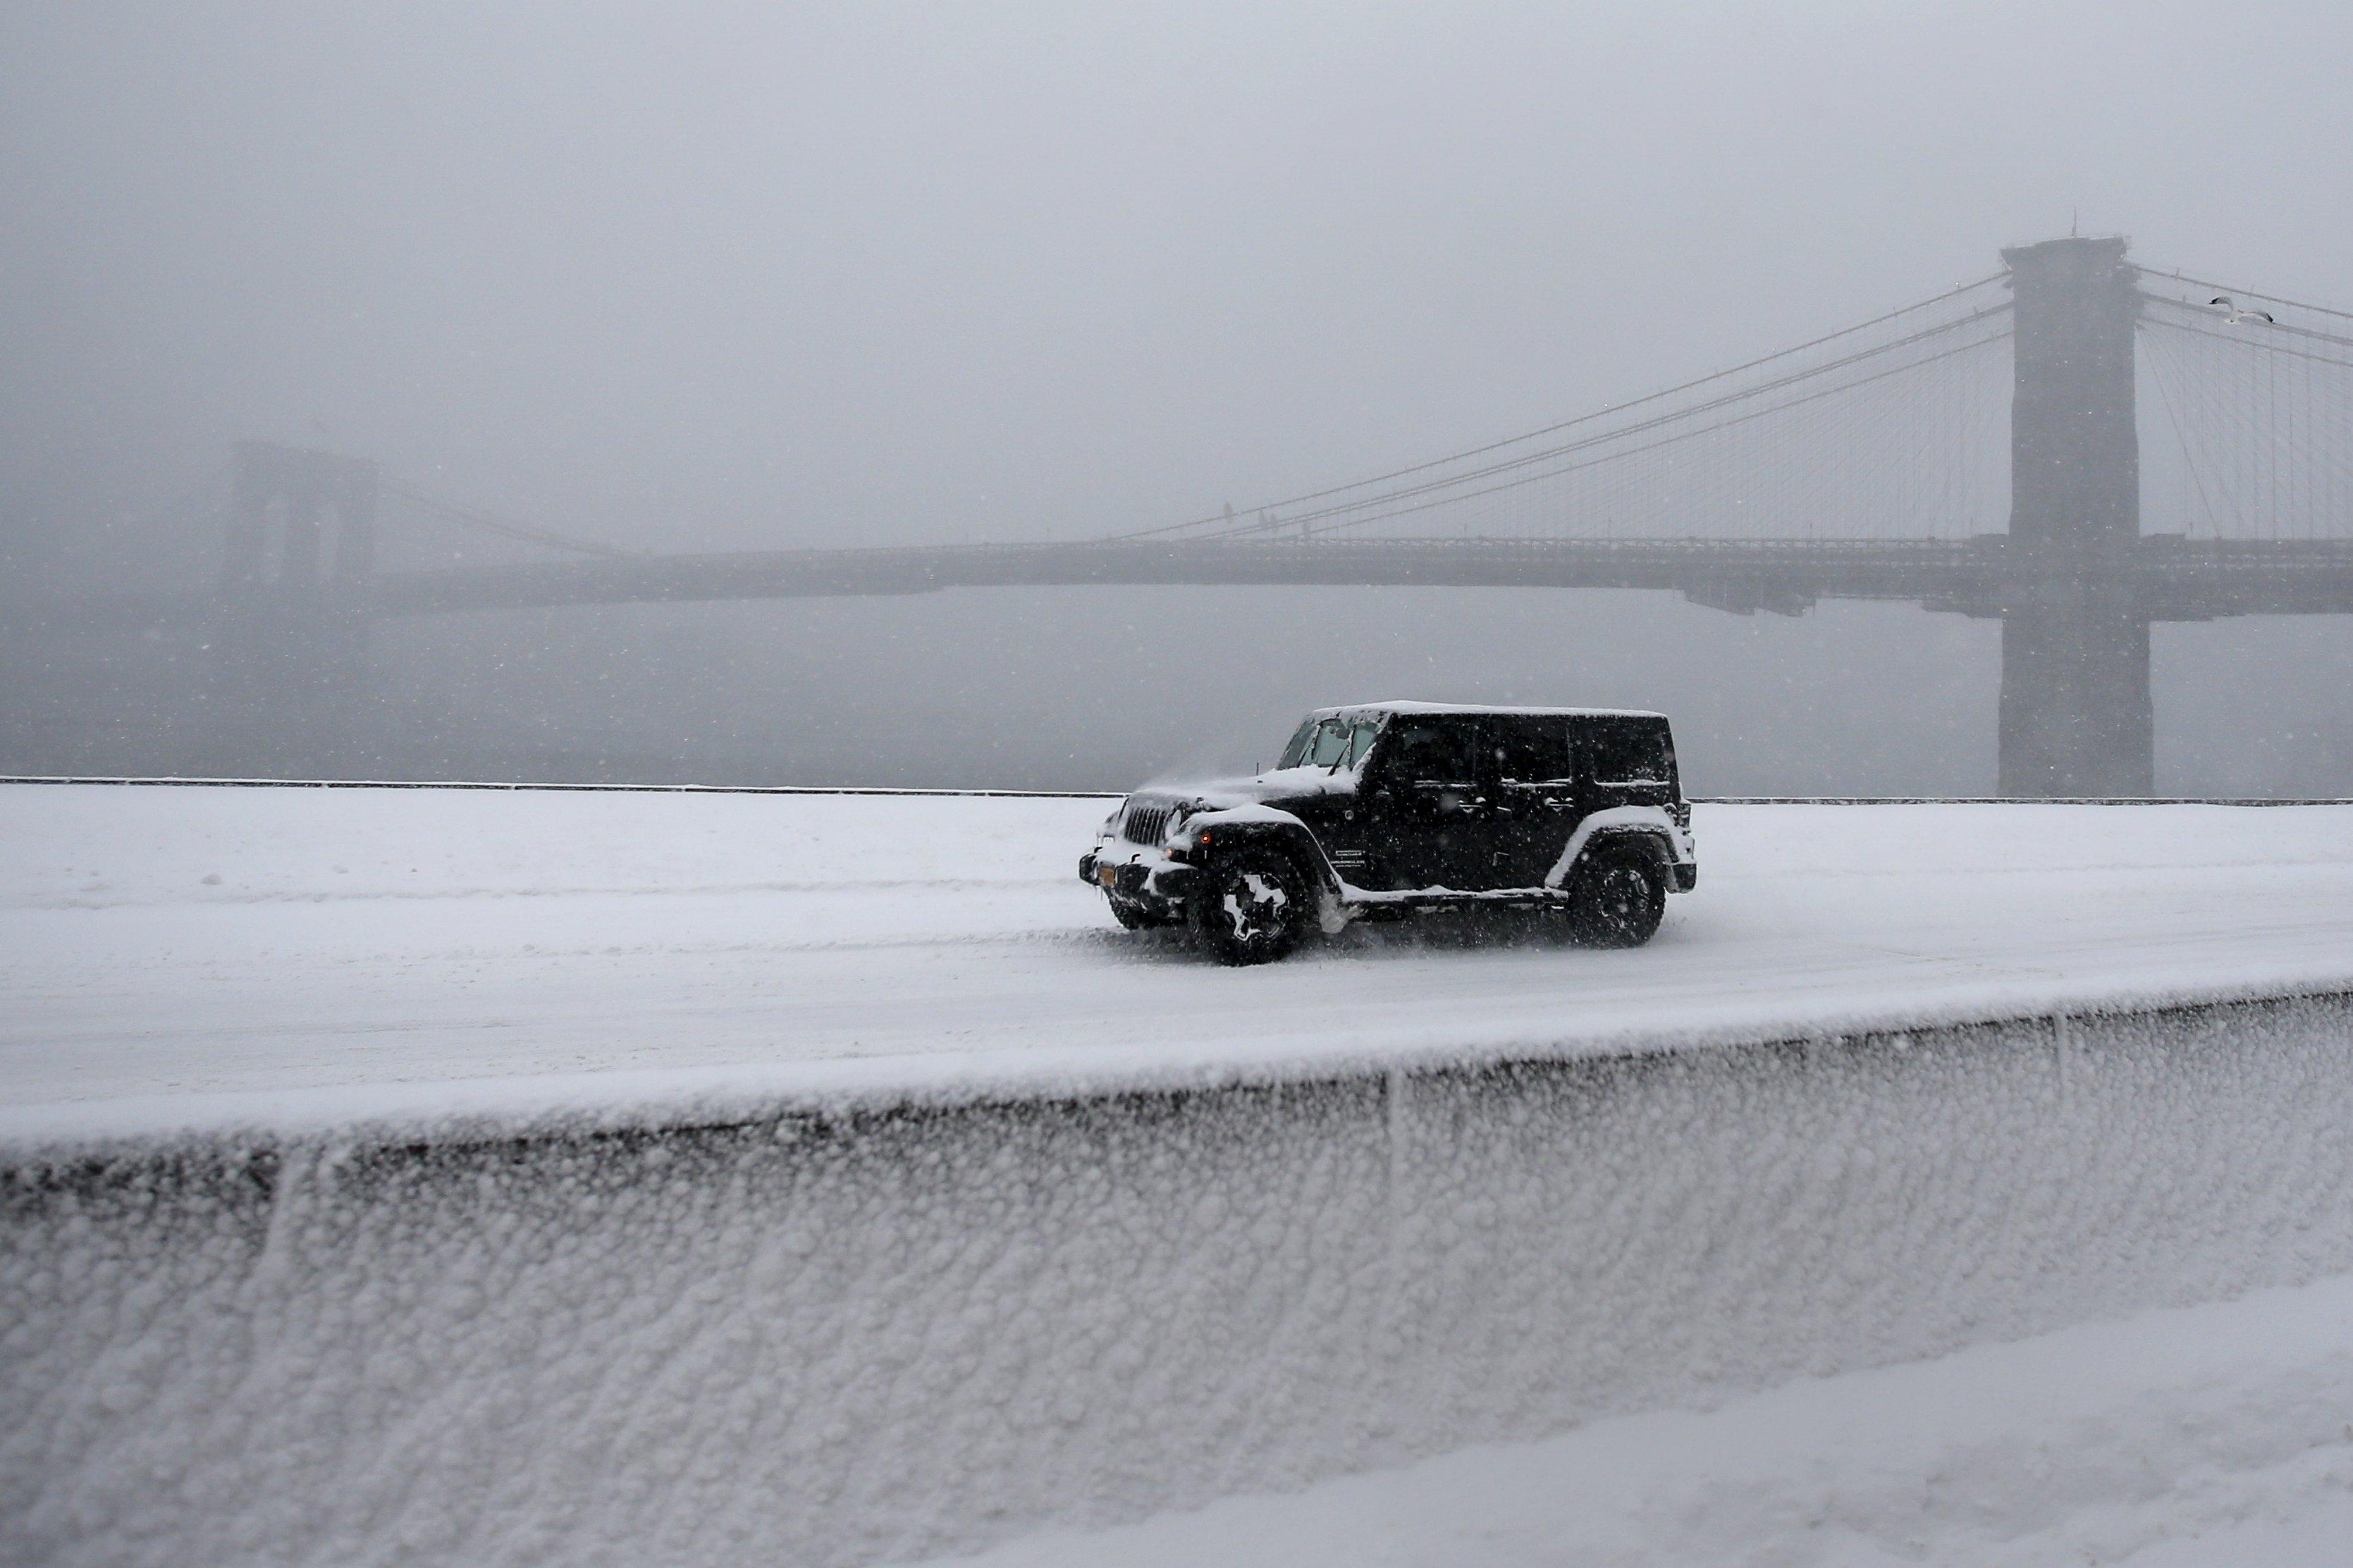 Jeep On Snowy FDR Drive In NYC, Jan. 23, 2016